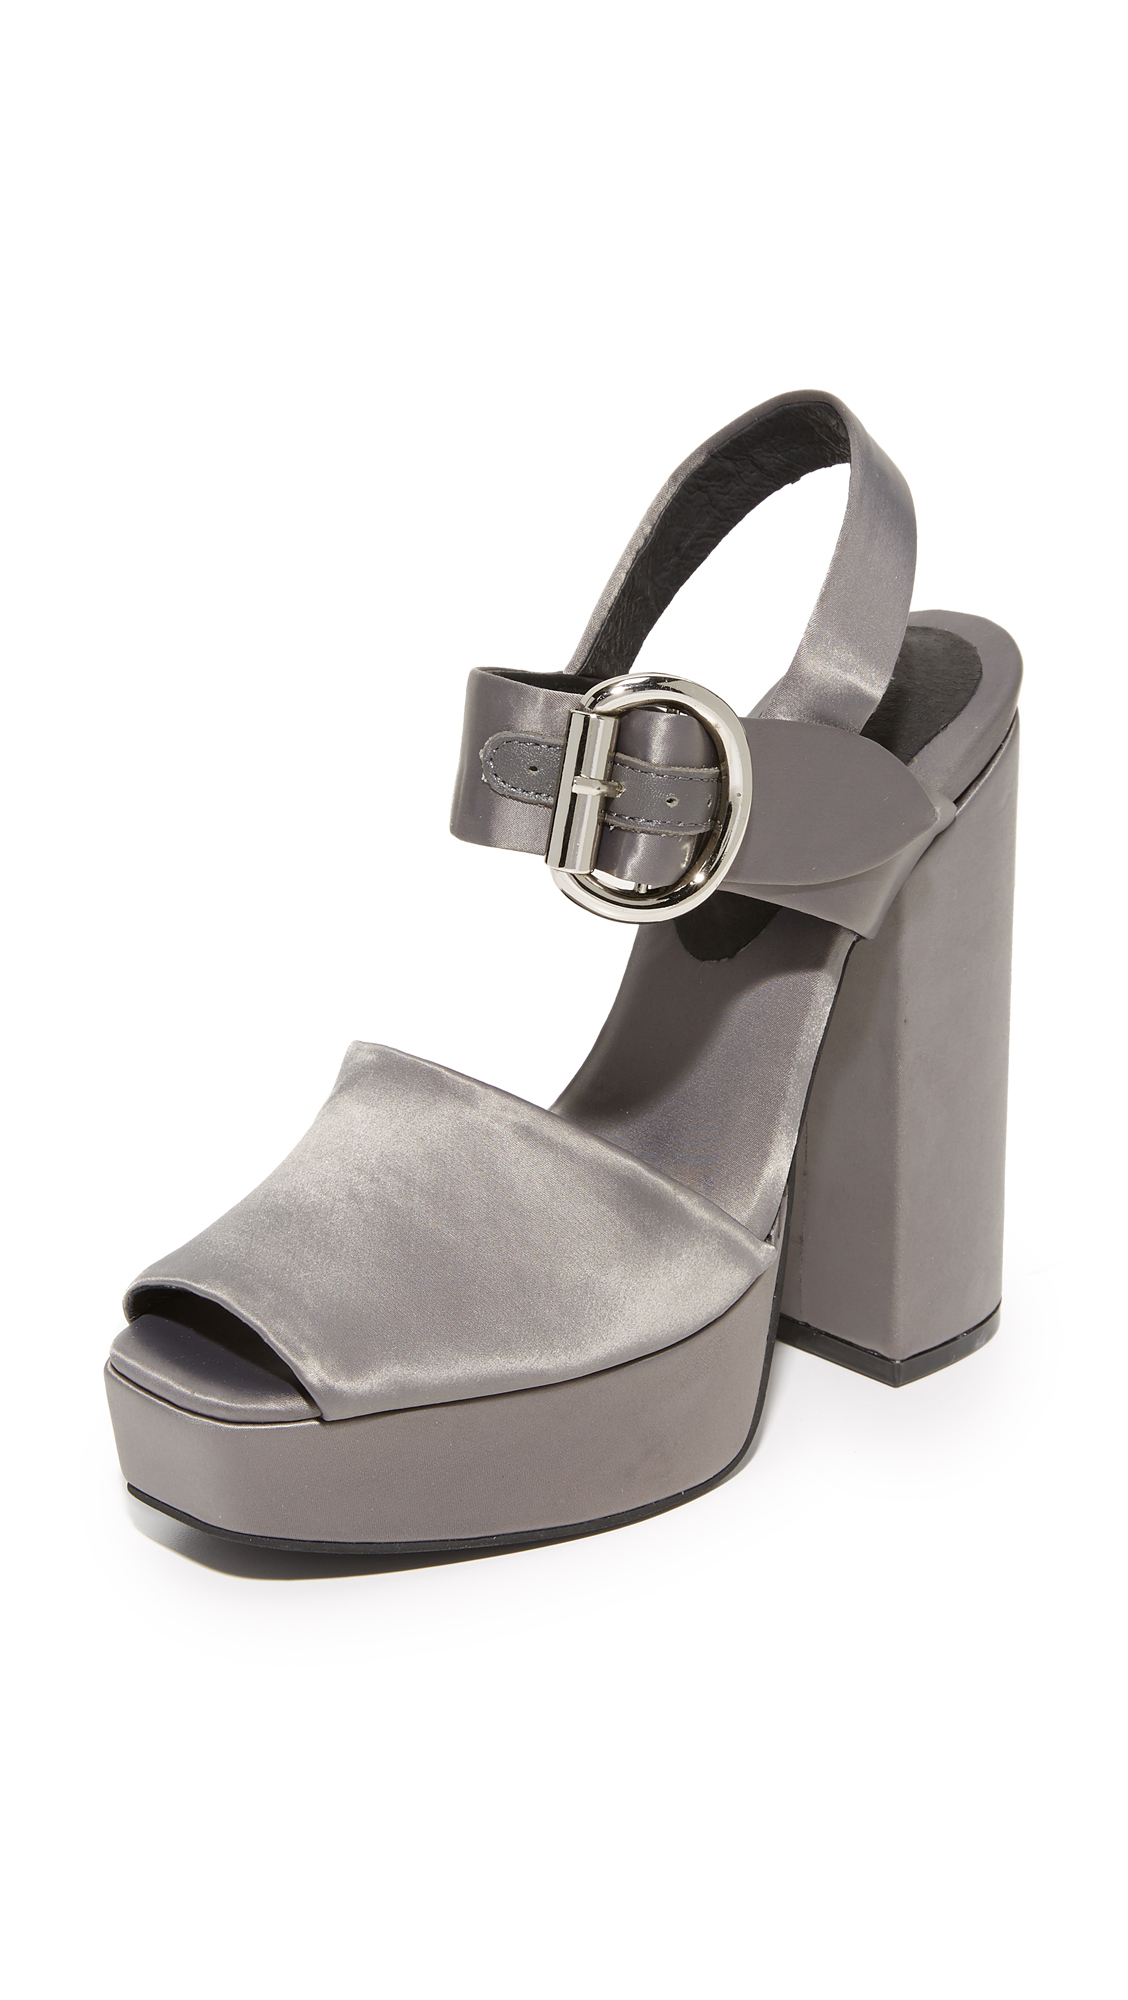 Jeffrey Campbell Mitra Satin Platform Sandals - Pewter